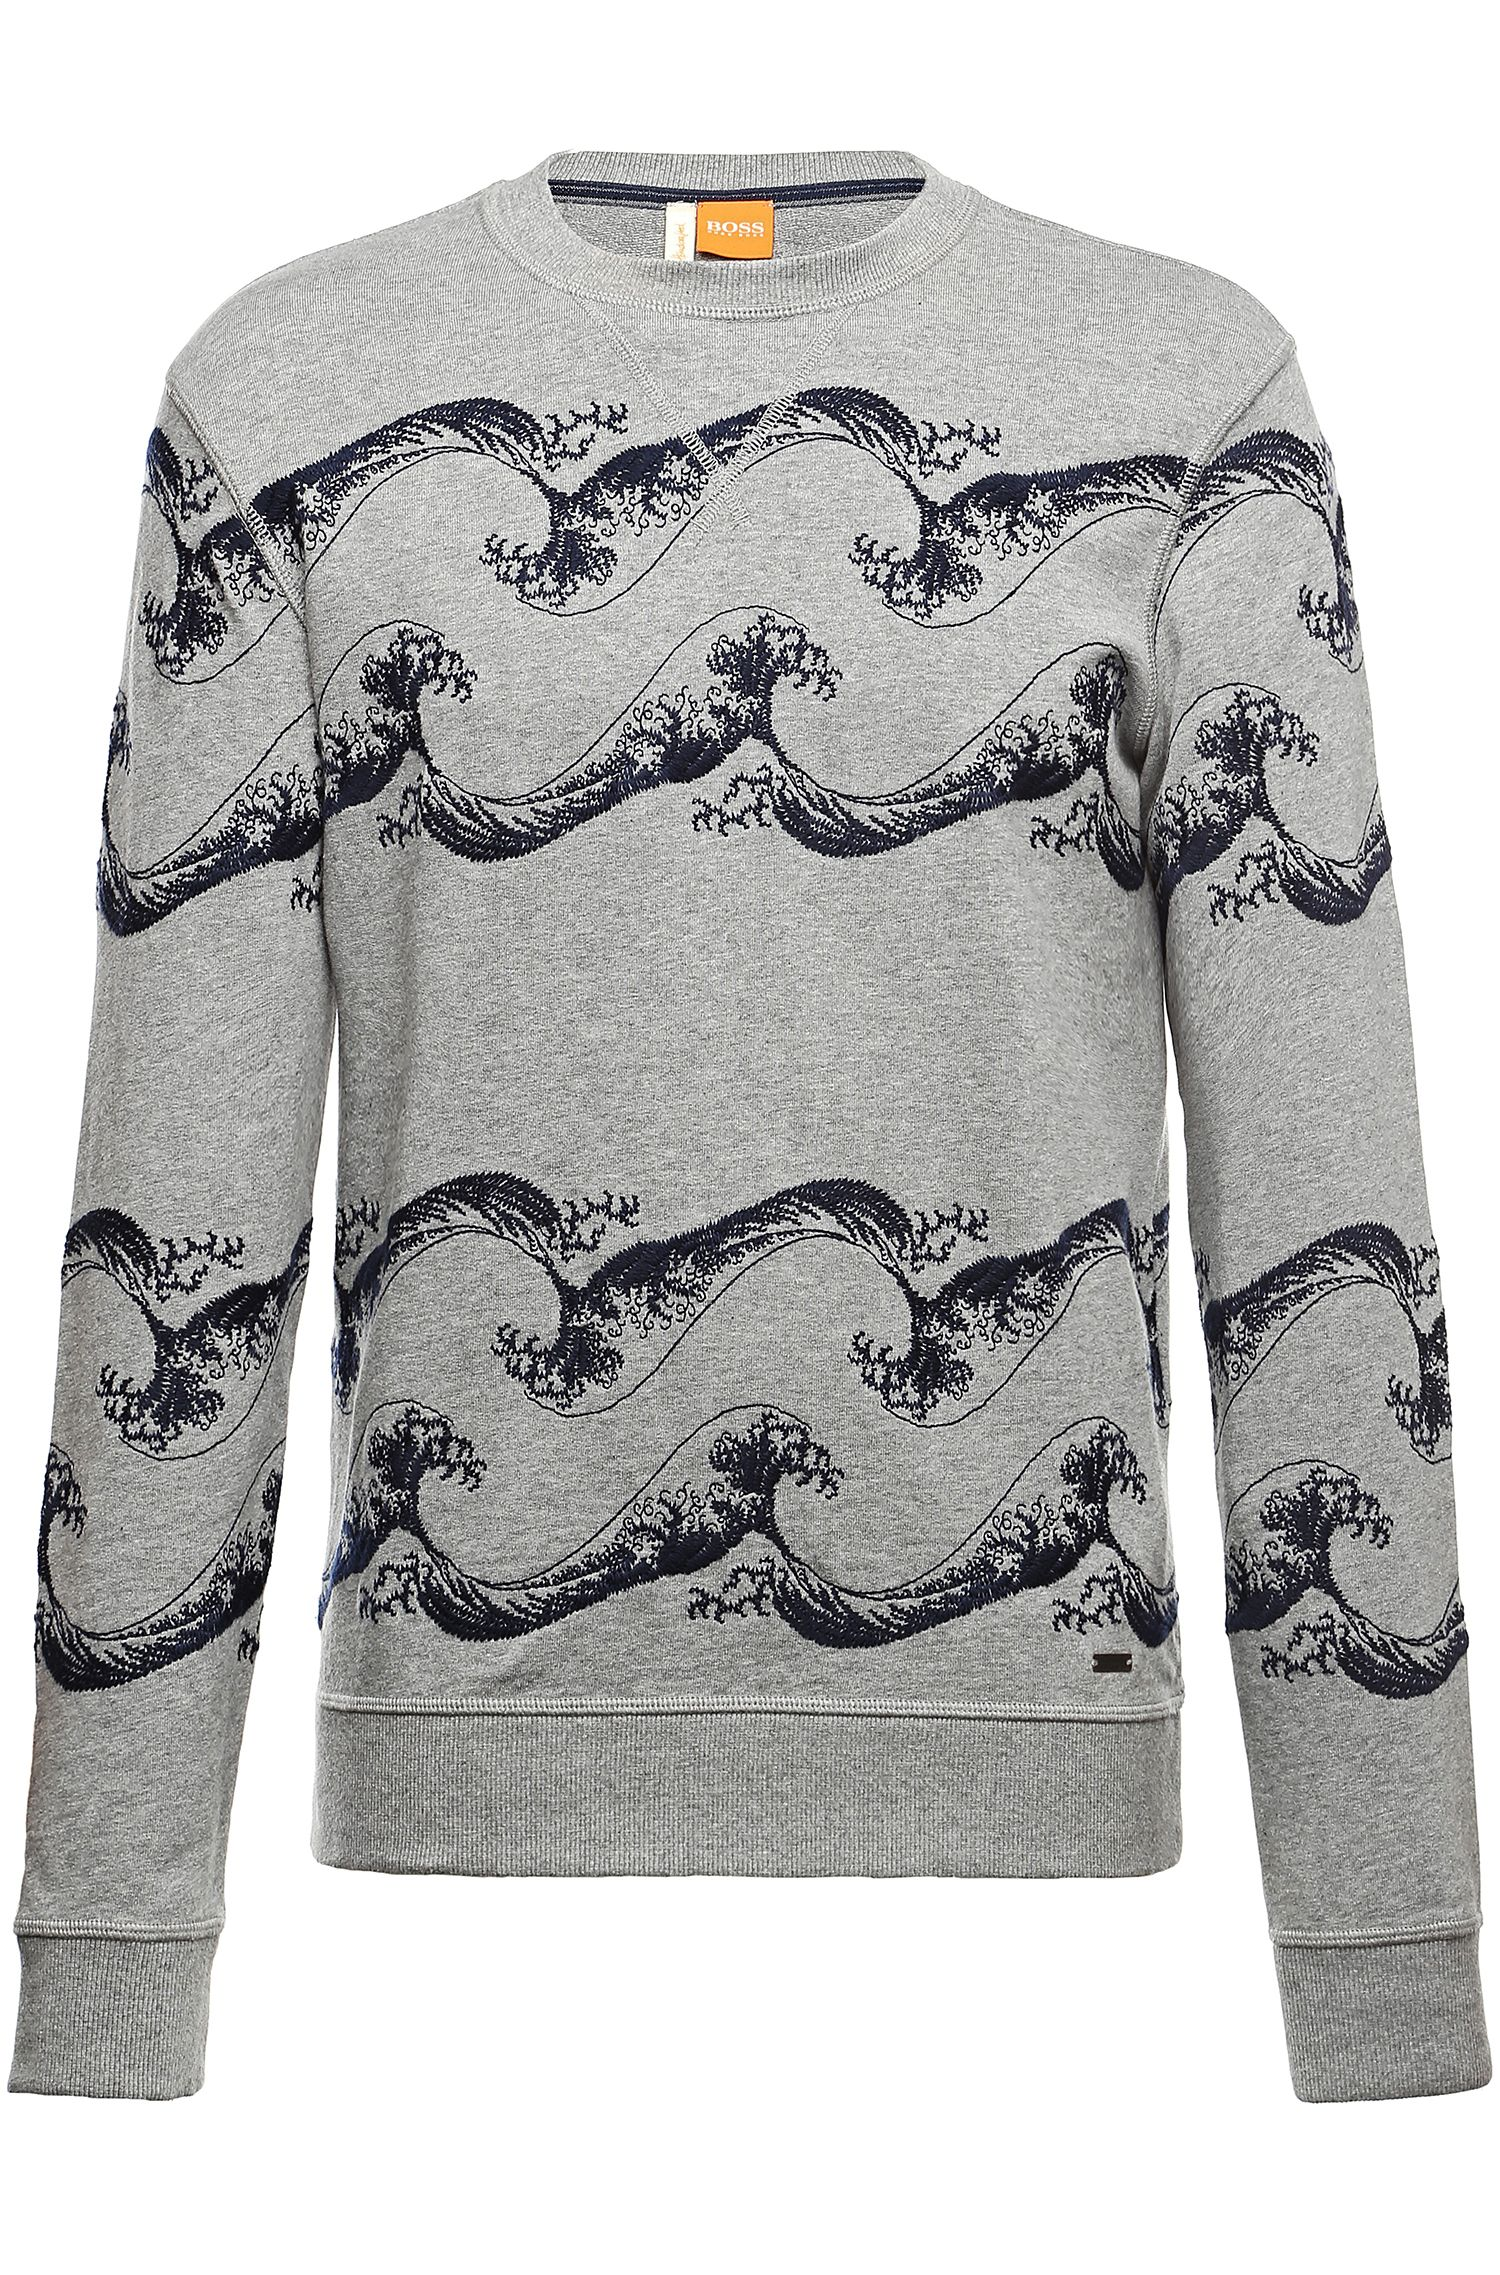 'Weatherbee-H' | Embroidered Cotton Sweatshirt